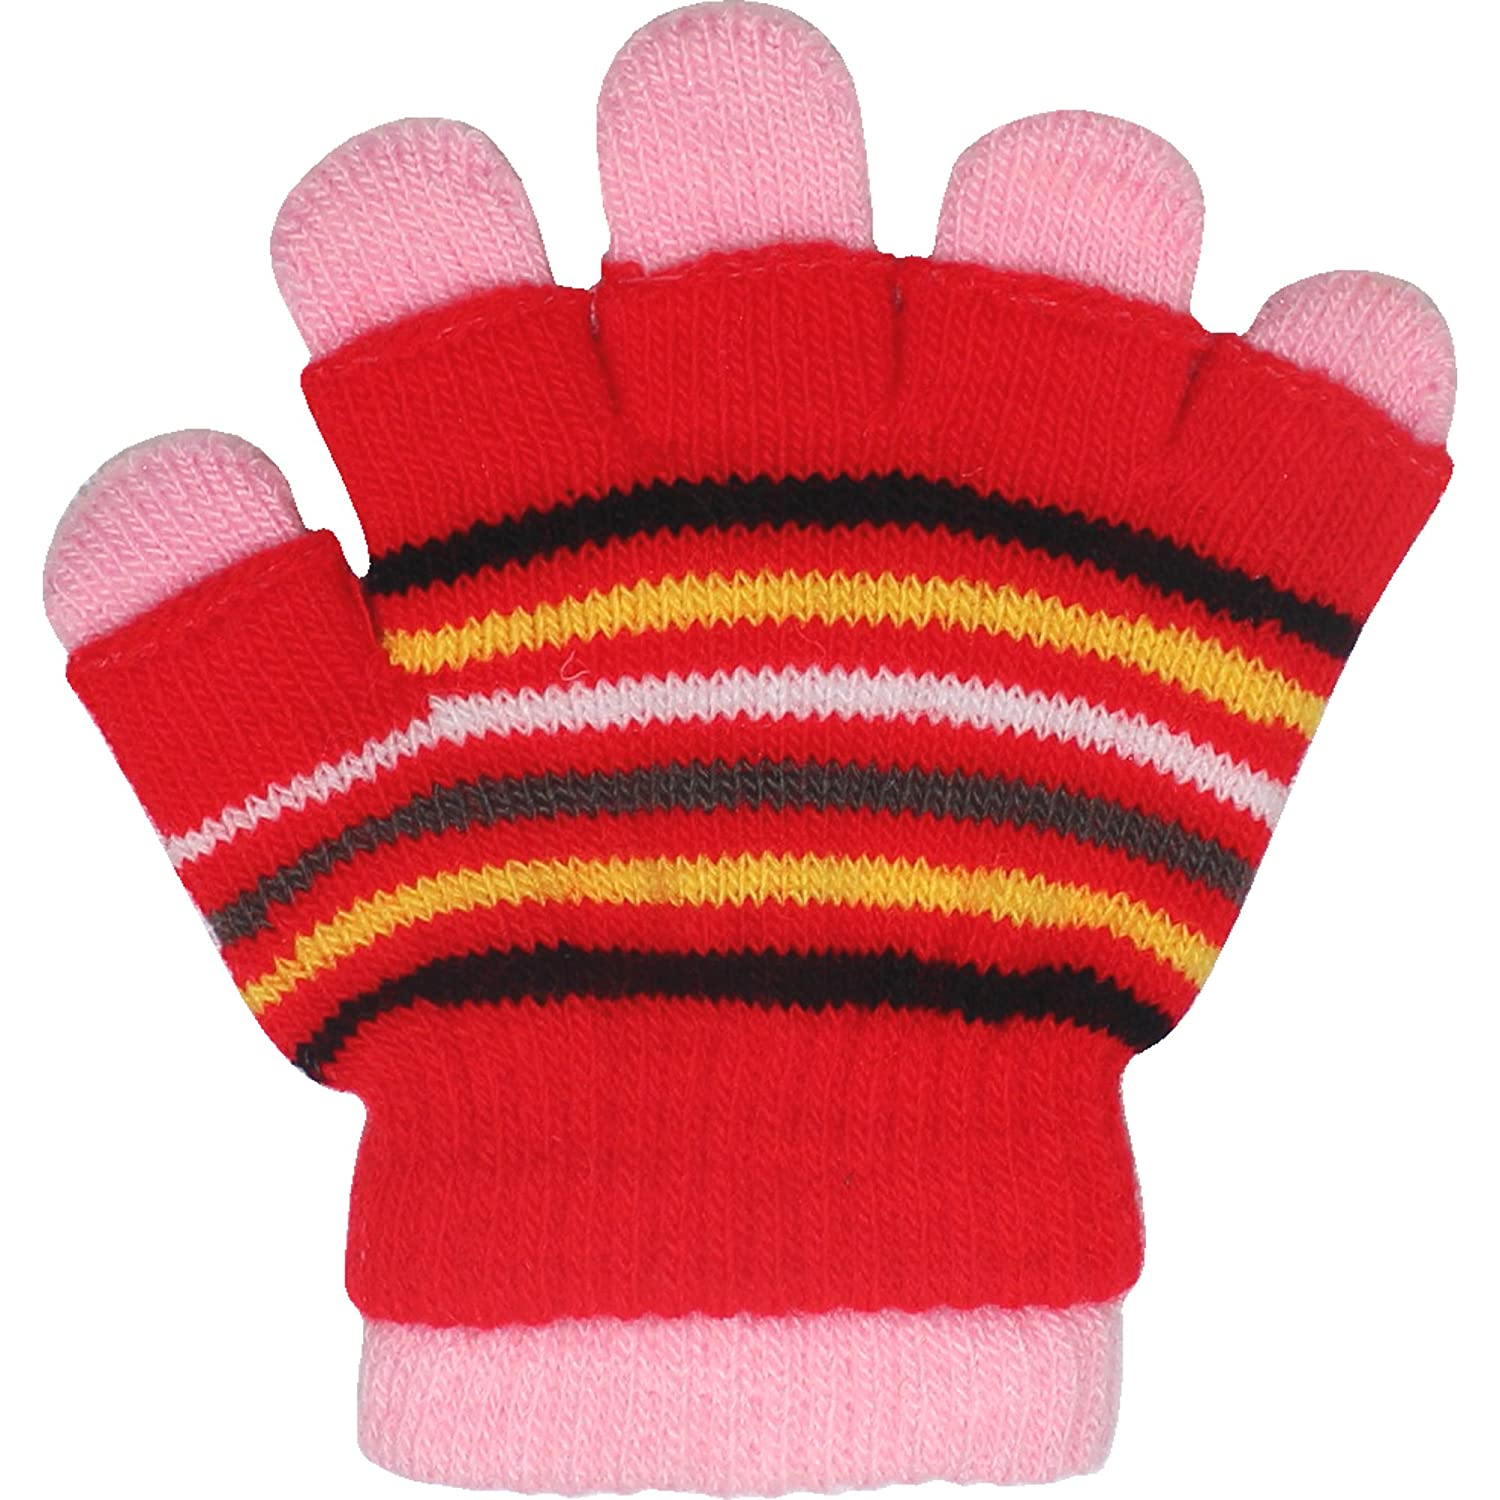 Toddlers Boys & Girls Unisex Striped Magic 2 in 1 Thermal Winter Gloves & Fingerless Gloves